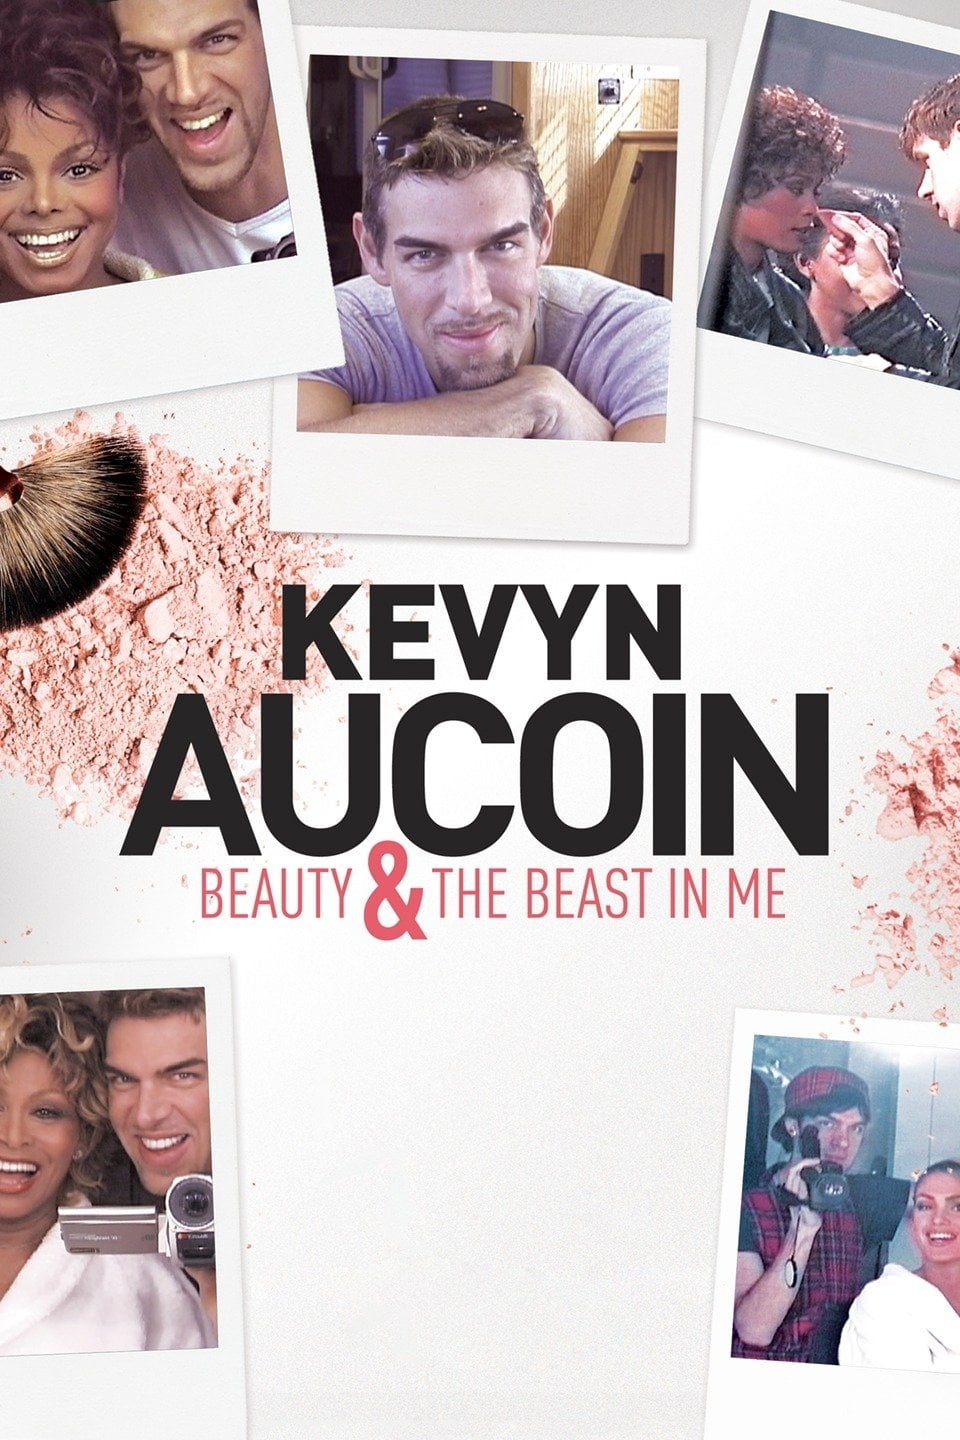 Kevyn Aucoin Beauty & the Beast in Me (2017)